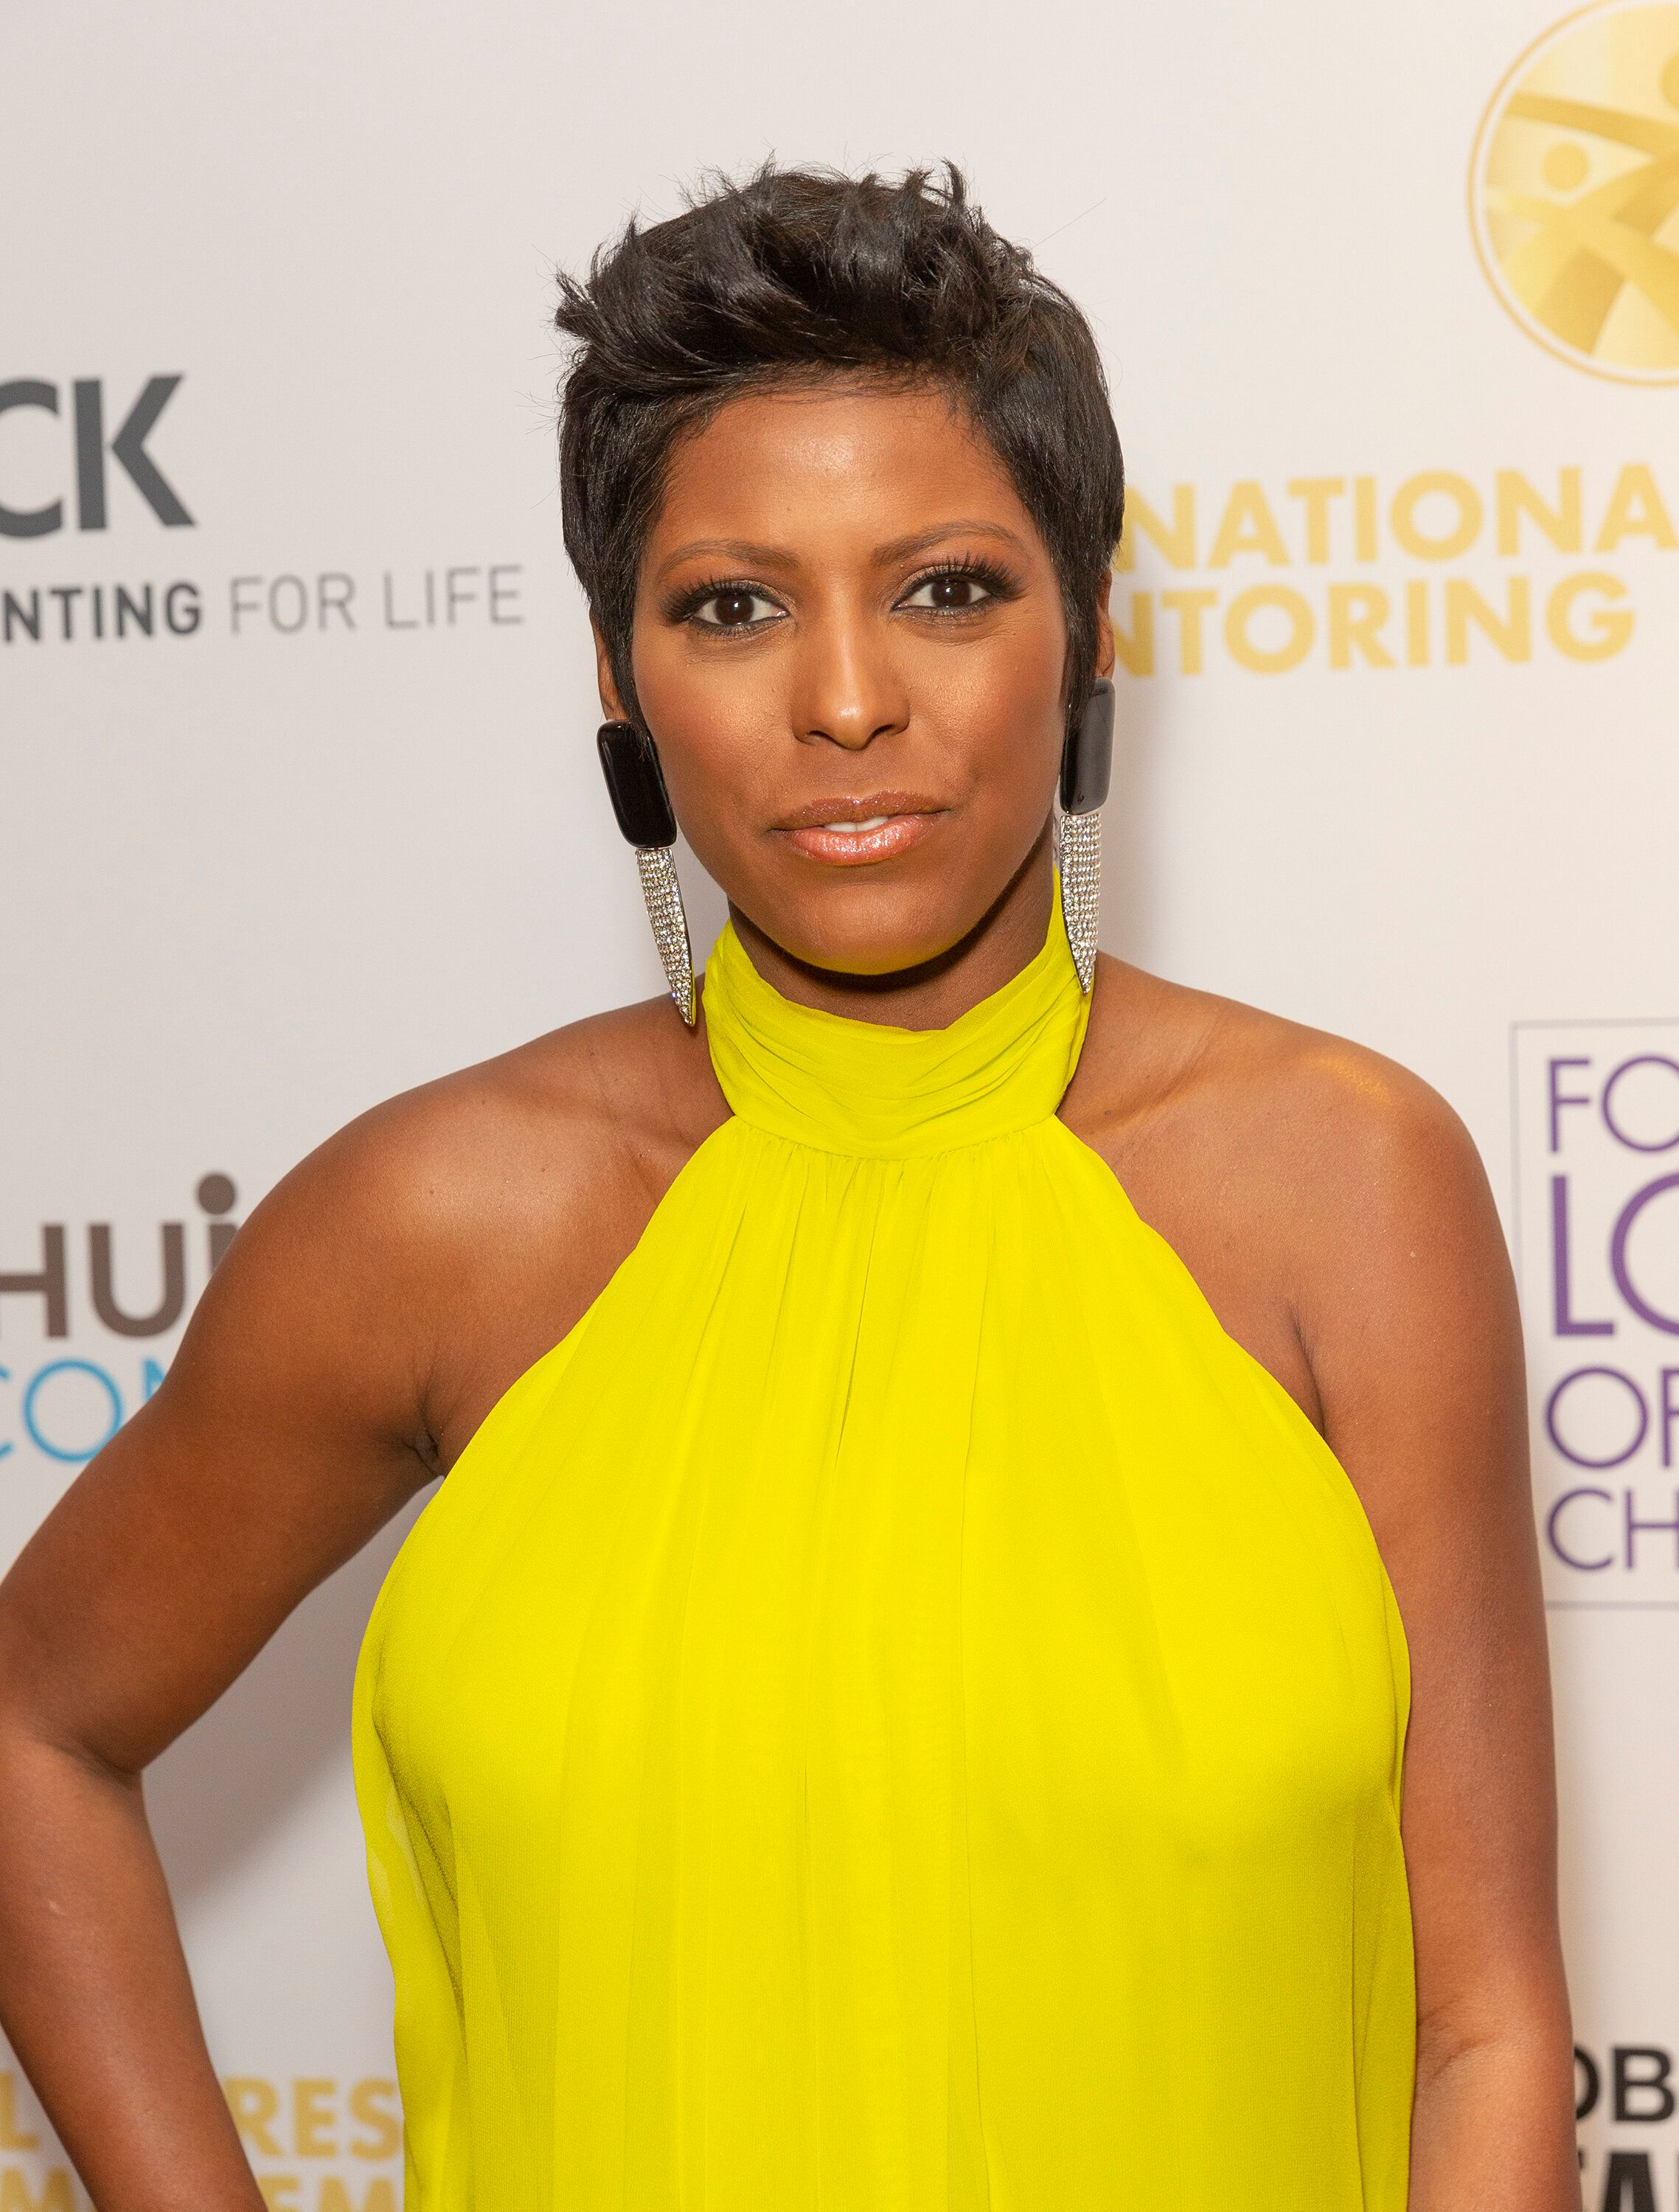 ZIEGFELD BALLROOM, NEW YORK, UNITED STATES - 2019/02/11: Tamron Hall wearing dress by Cushnie attends For the Love of Our Children National CARES Mentoring Movement Gala at Ziegfeld Ballroom. (Photo by Lev Radin/Pacific Press/LightRocket via Getty Images)